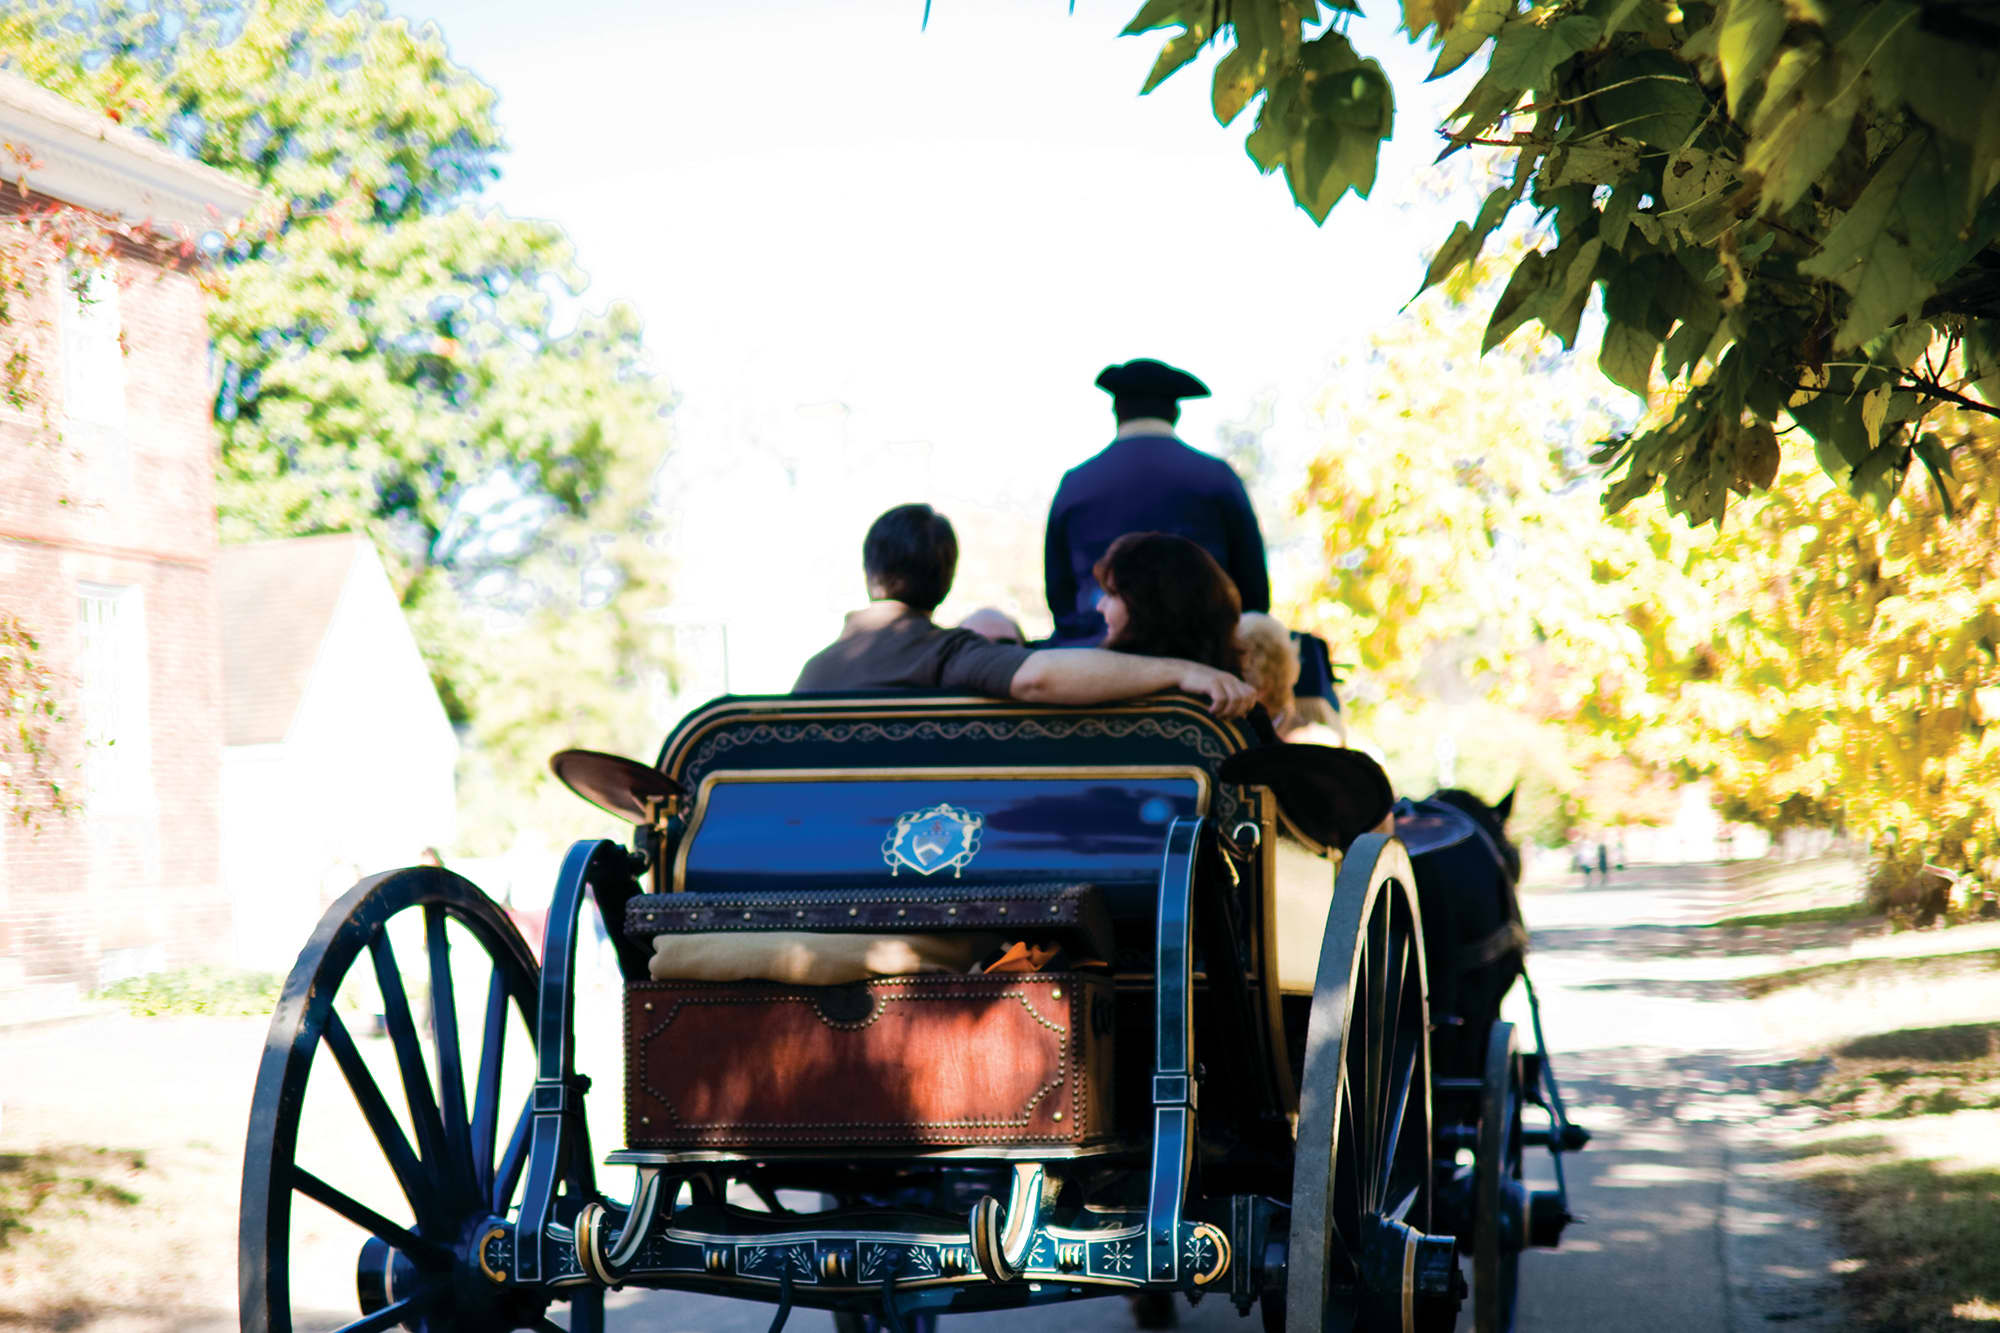 Spooky Carriage Rides (Blue Carriage)